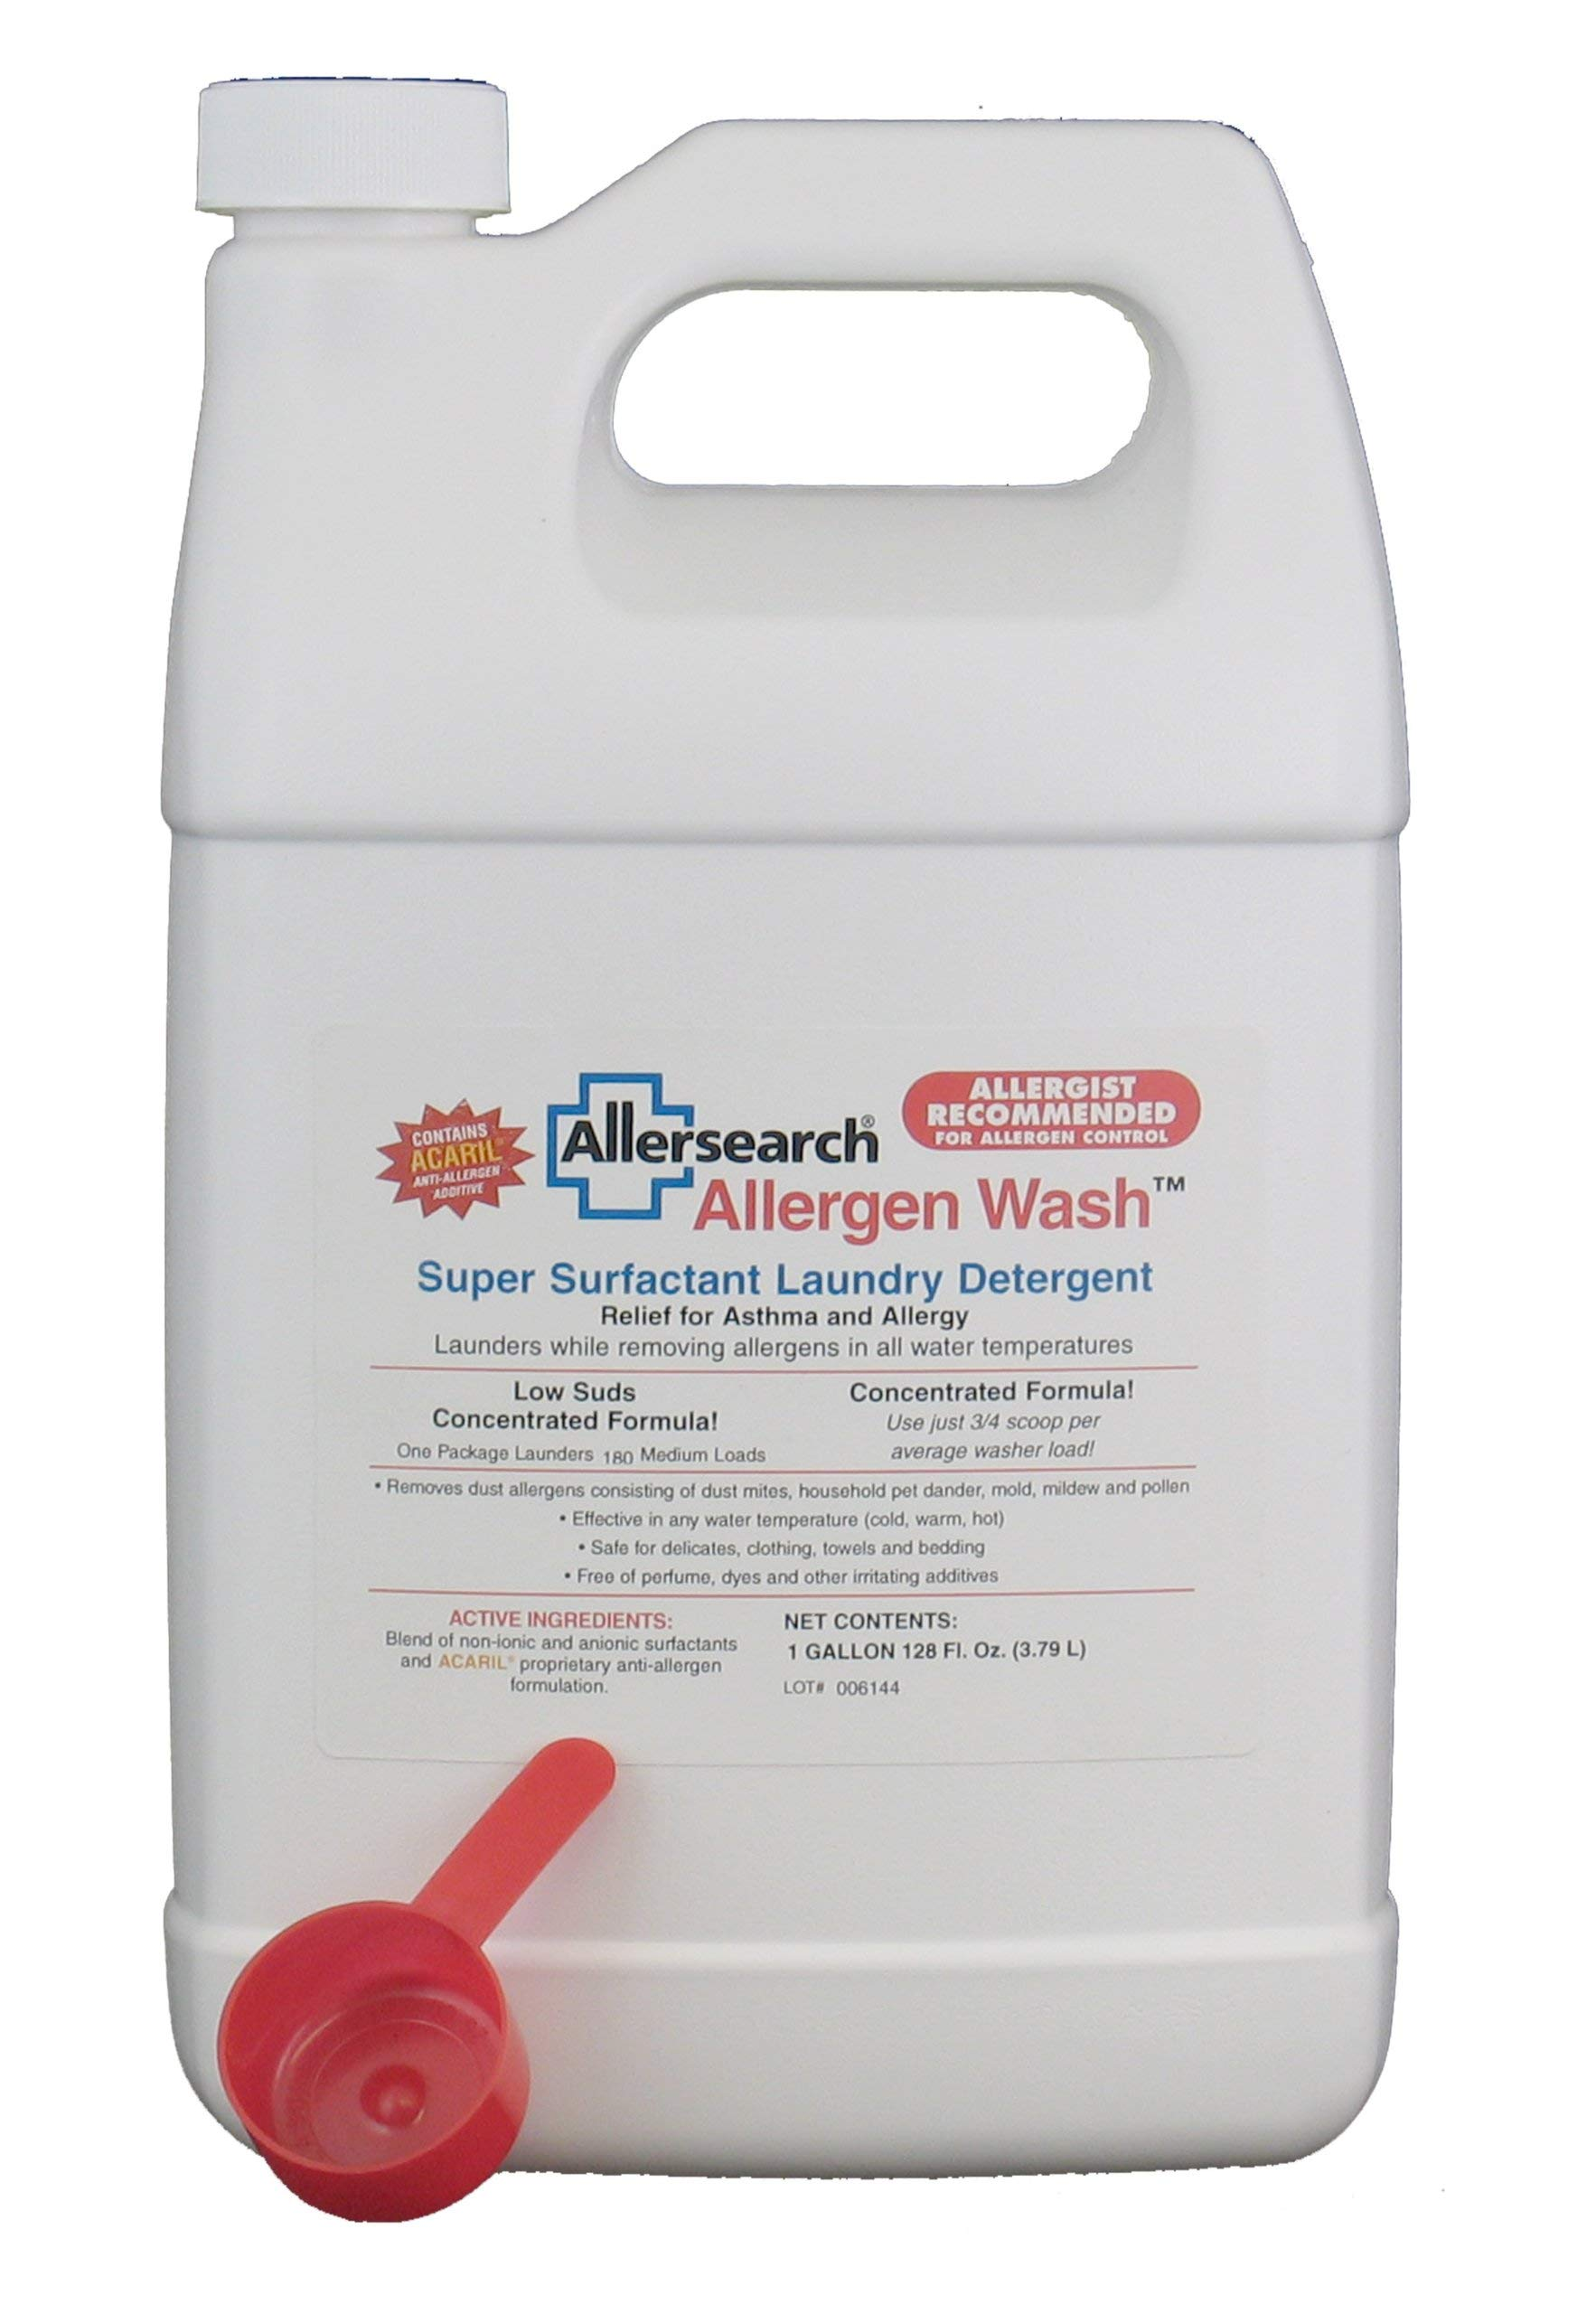 Allergen Wash Laundry Detergent 128 oz. by Allersearch